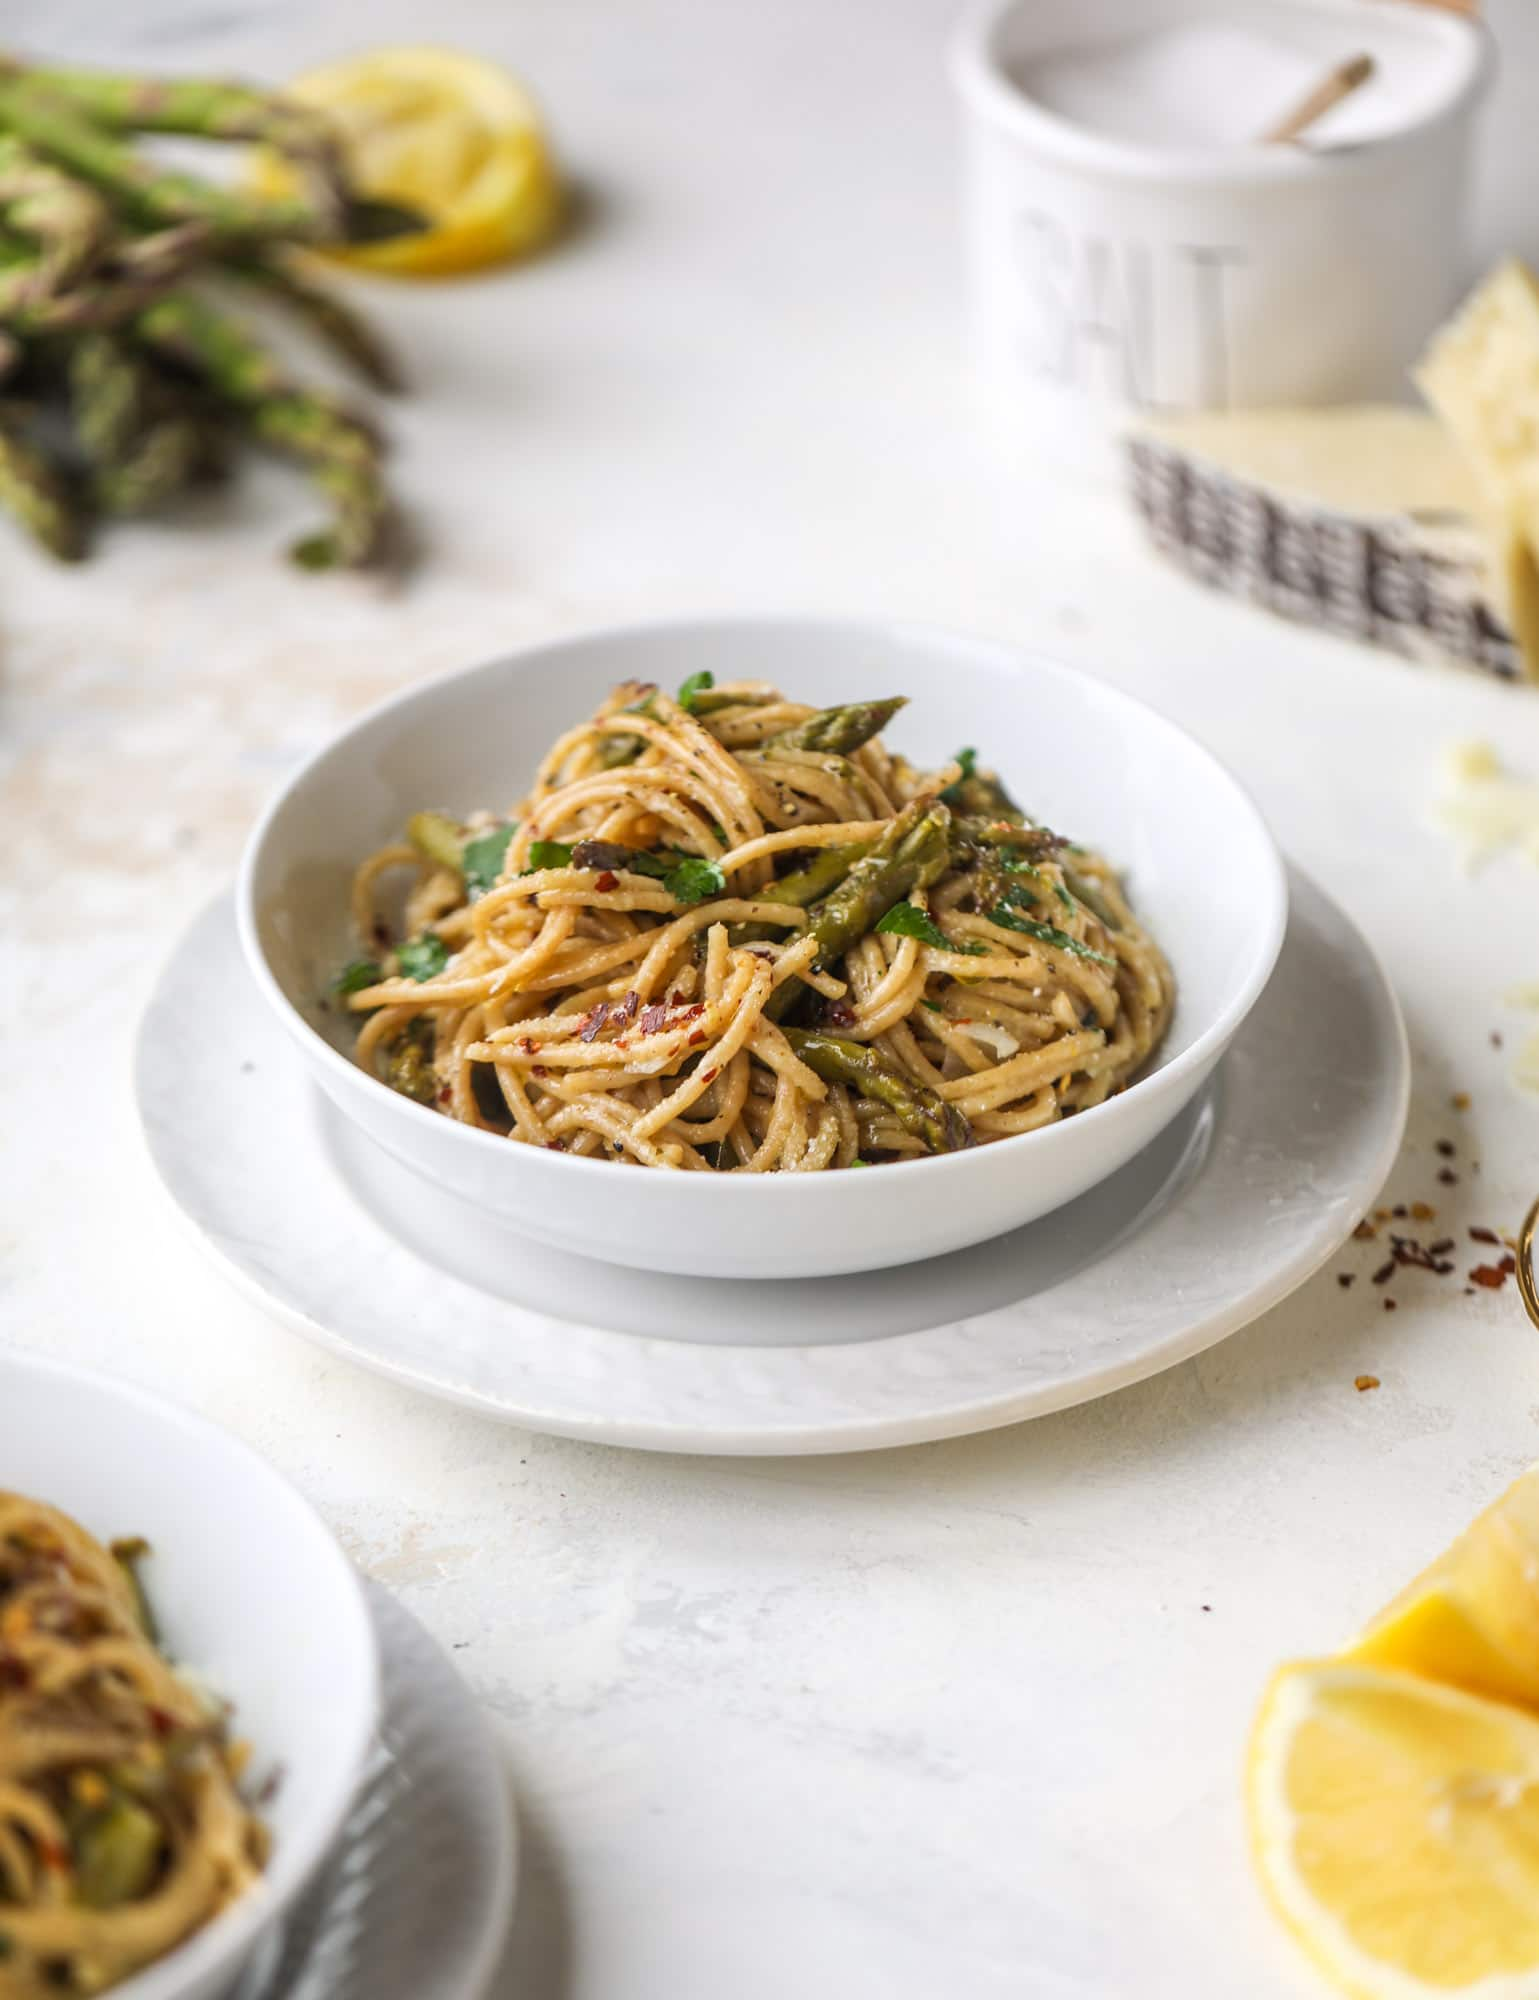 A perfect one pot pasta made with asparagus, shallots, lemon and mascarpone chese. The best weeknight dinner that comes together in a snap! I howsweeteats.com #asparagus #onepotpasta